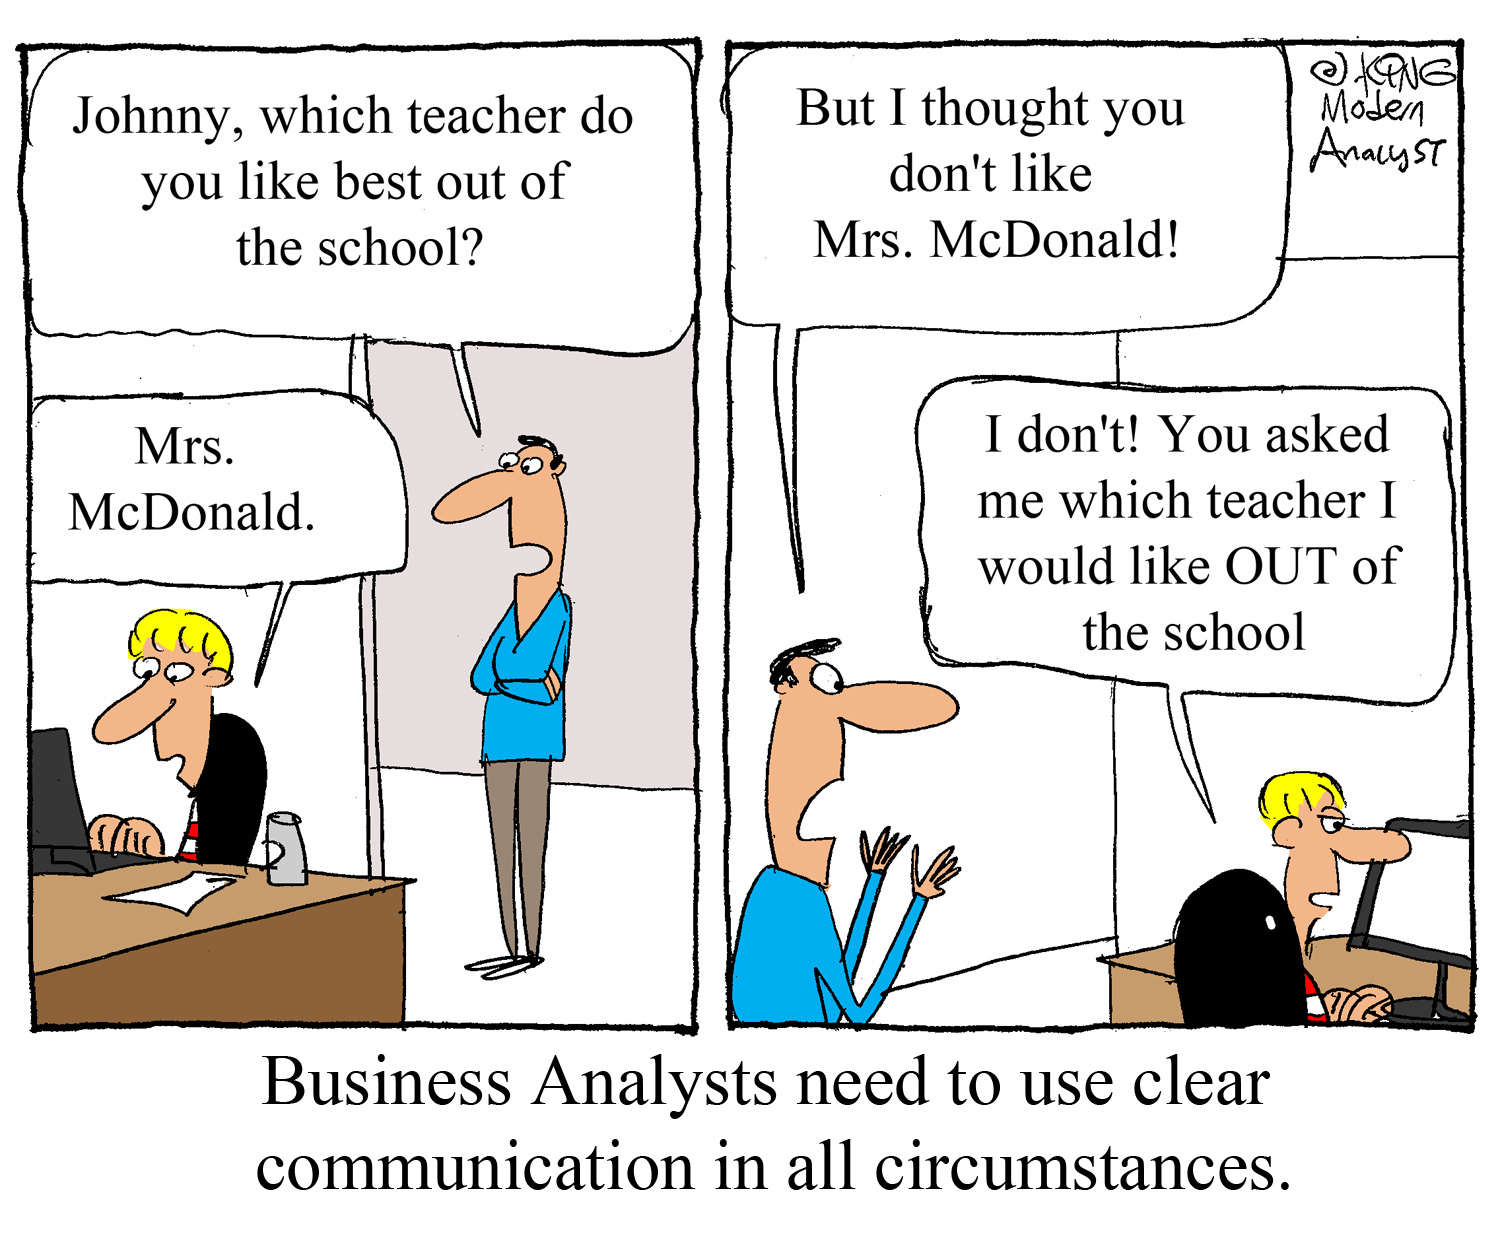 Business Analysts Need to Use Clear Communication - Always